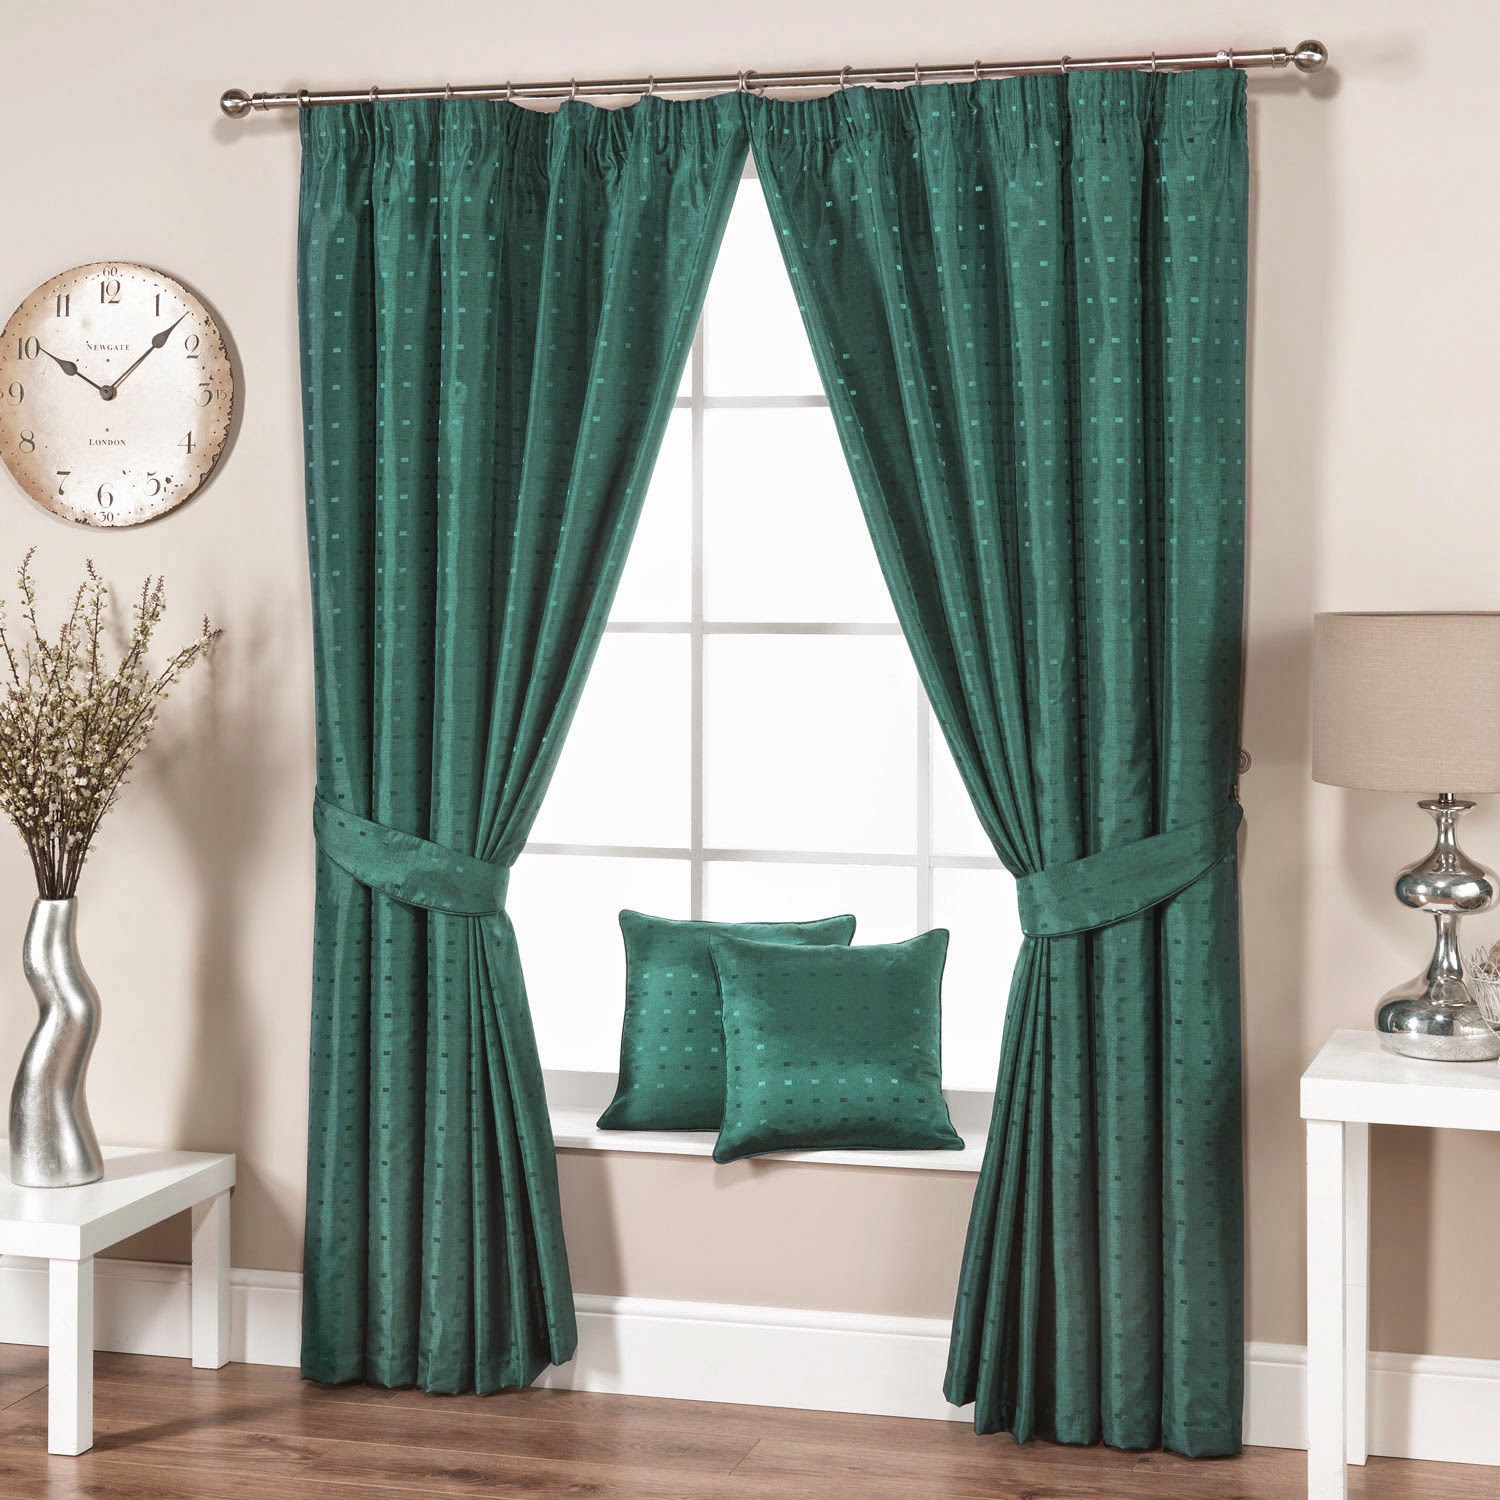 Green living room curtains for modern interior for Curtains in a living room